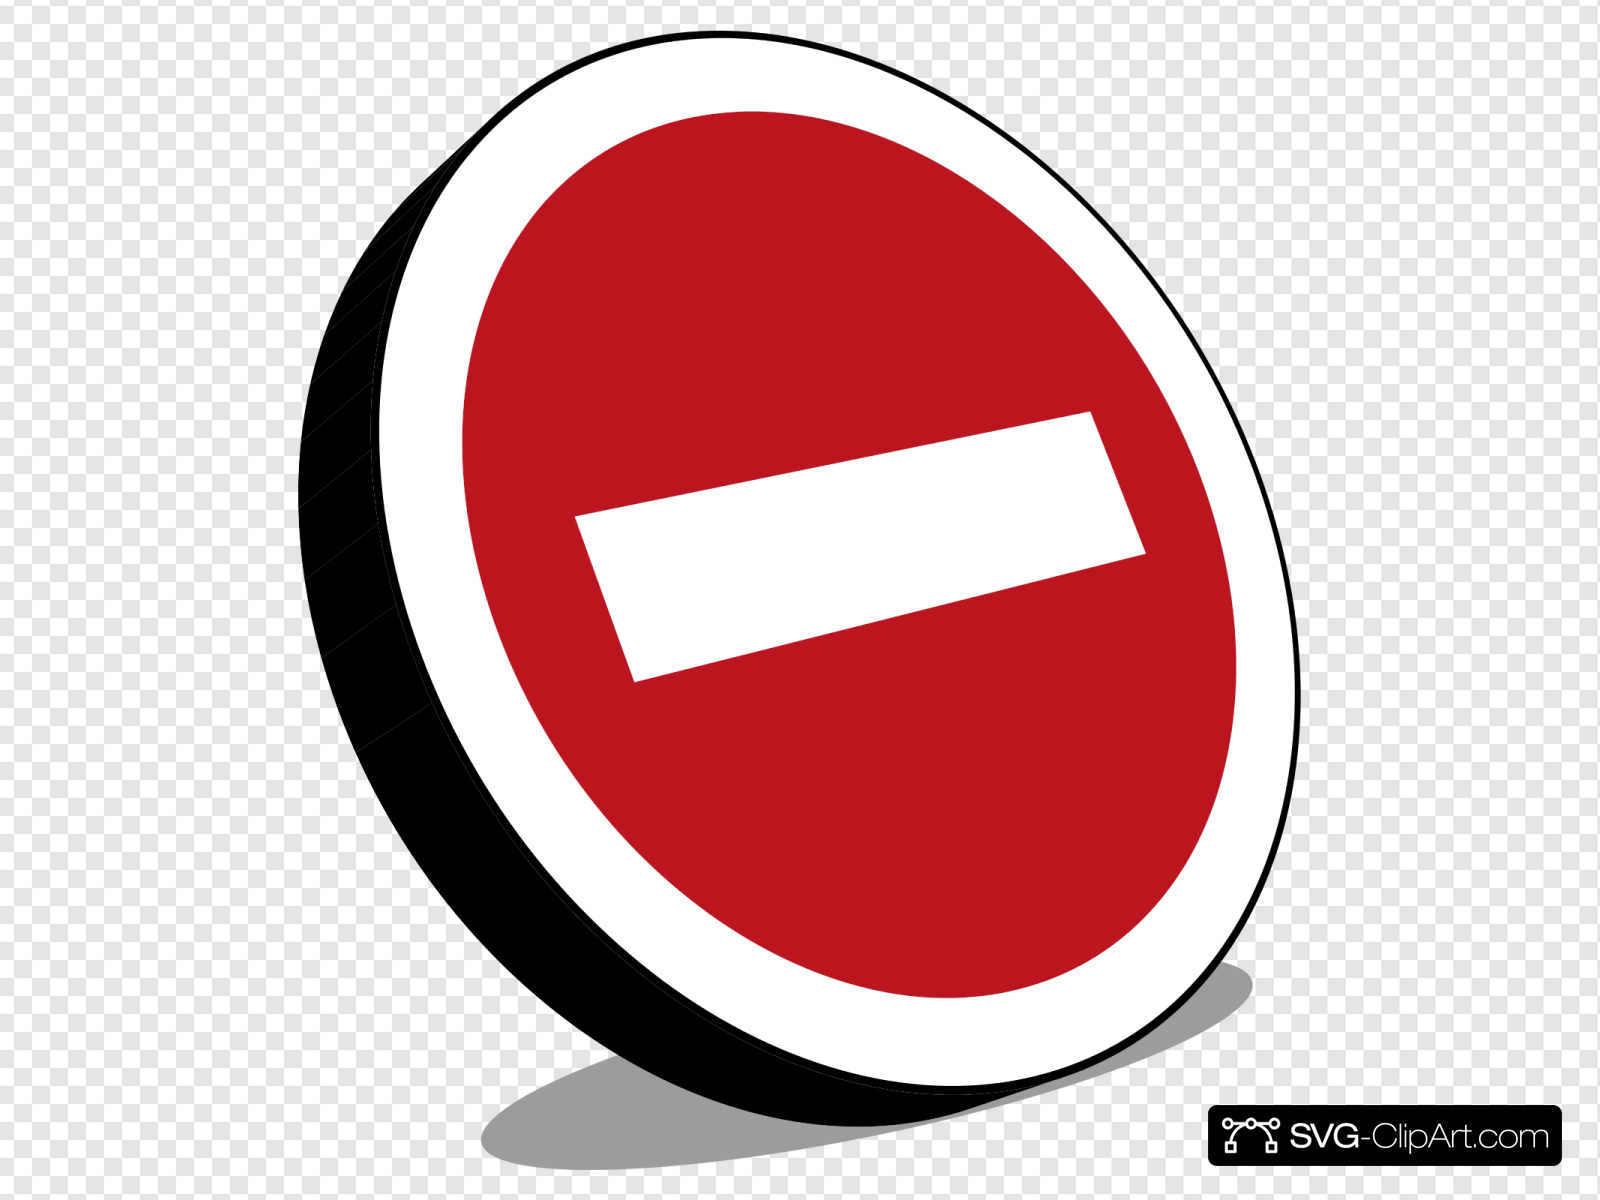 No Entry Sign Clip art, Icon and SVG.